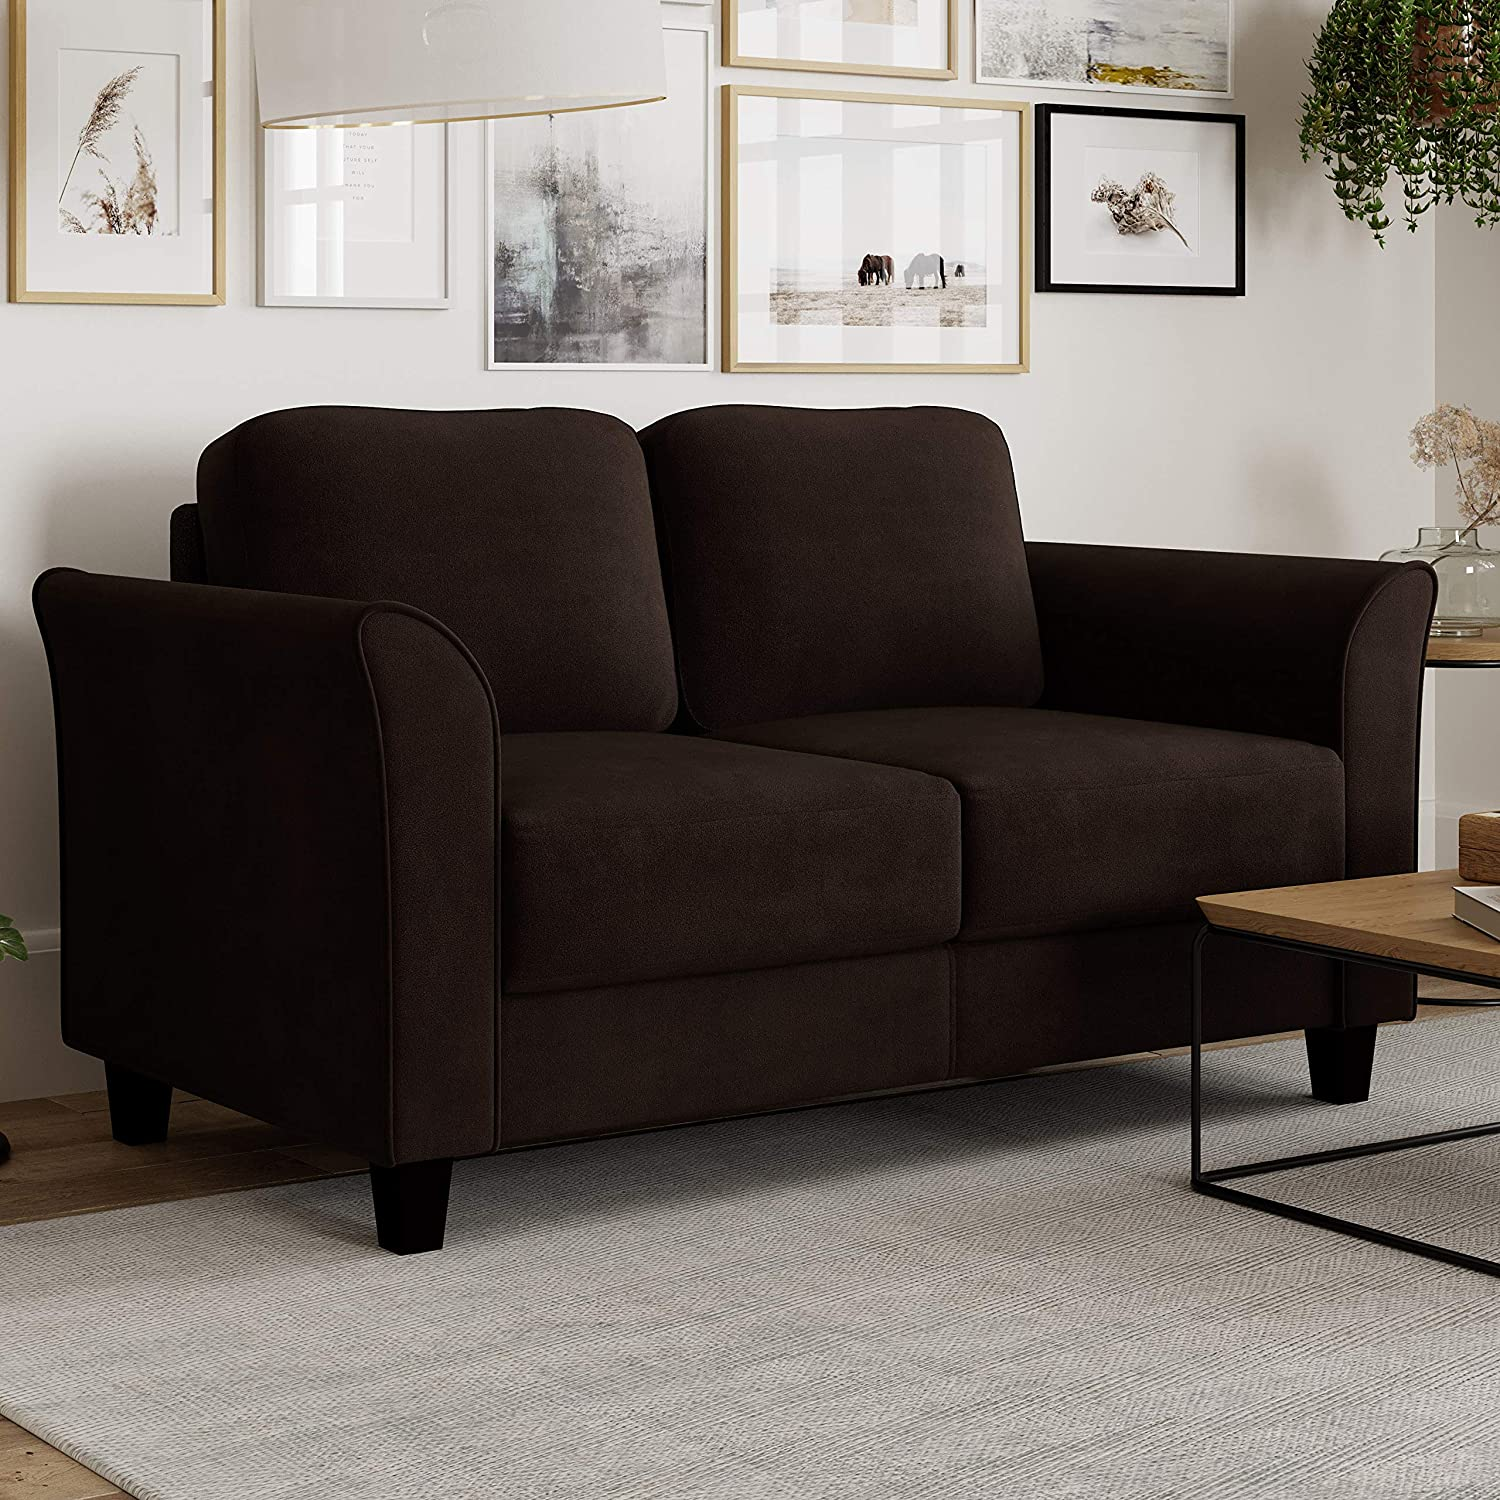 Lifestyle Solutions Watford Loveseat, Small Couch for Living Room, Bedroom, or Office Decor, Minimalist and Modern Couch Designed for Maximum Comfort, Coffee